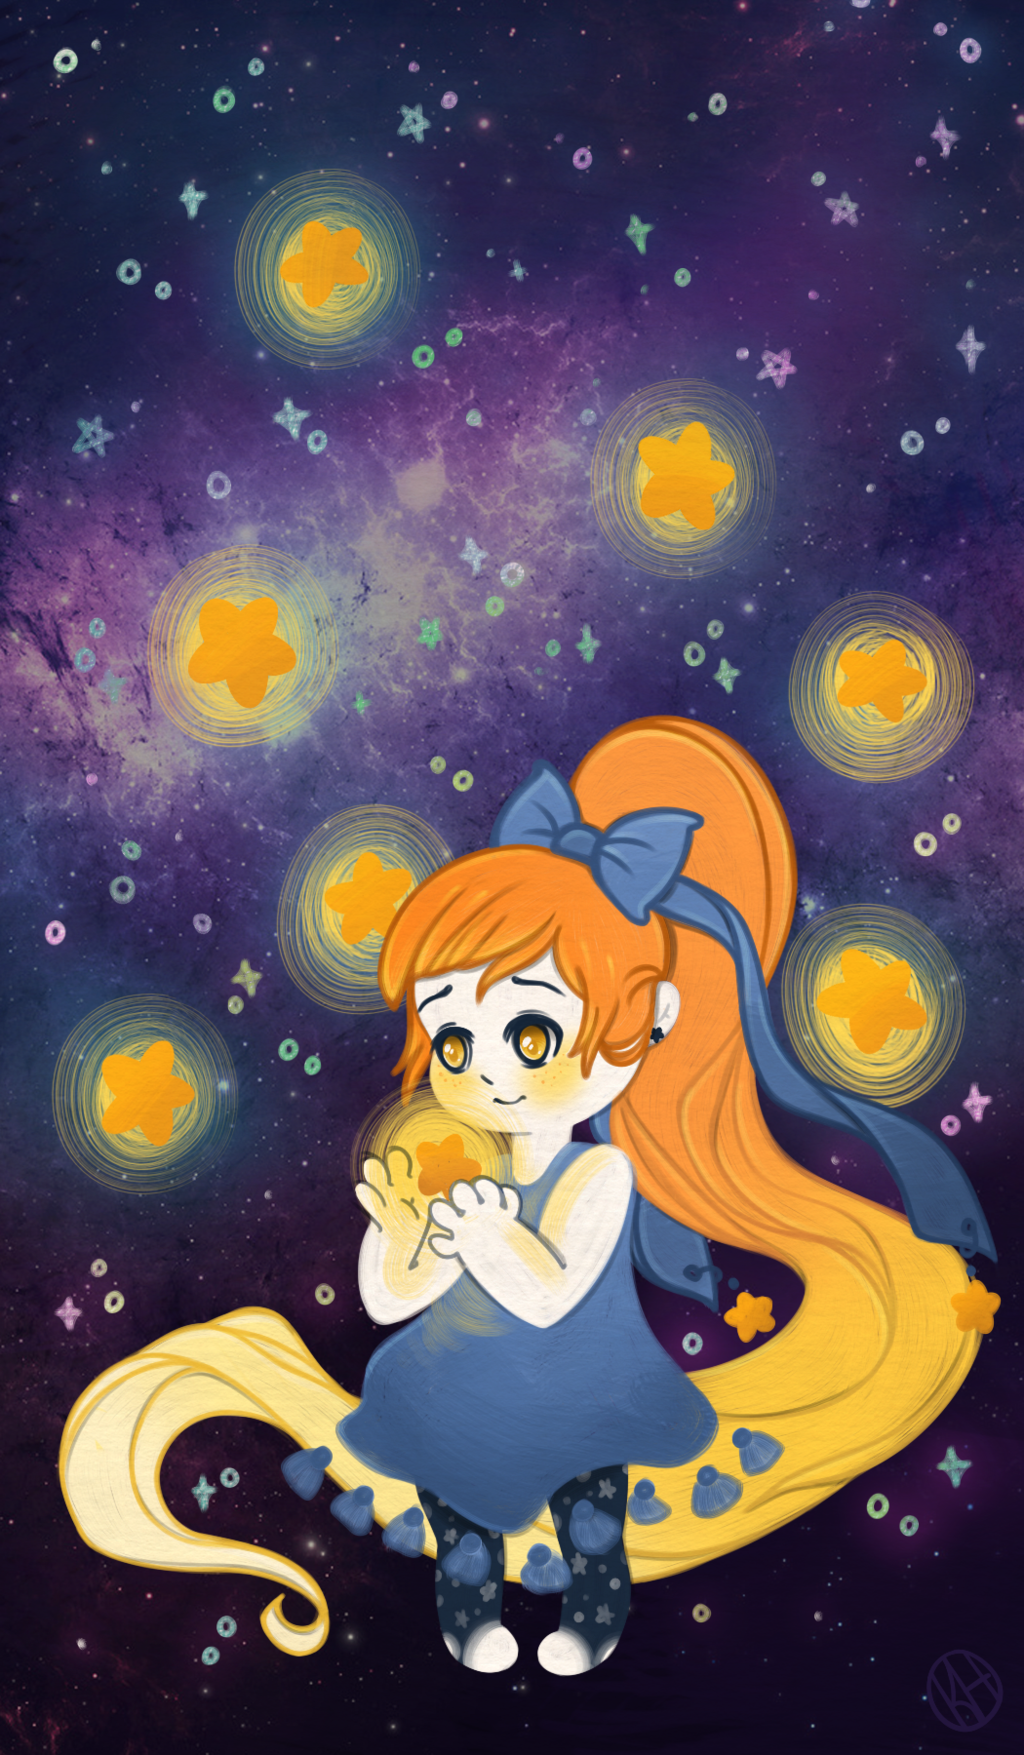 Most recent image: Princess of the Stars